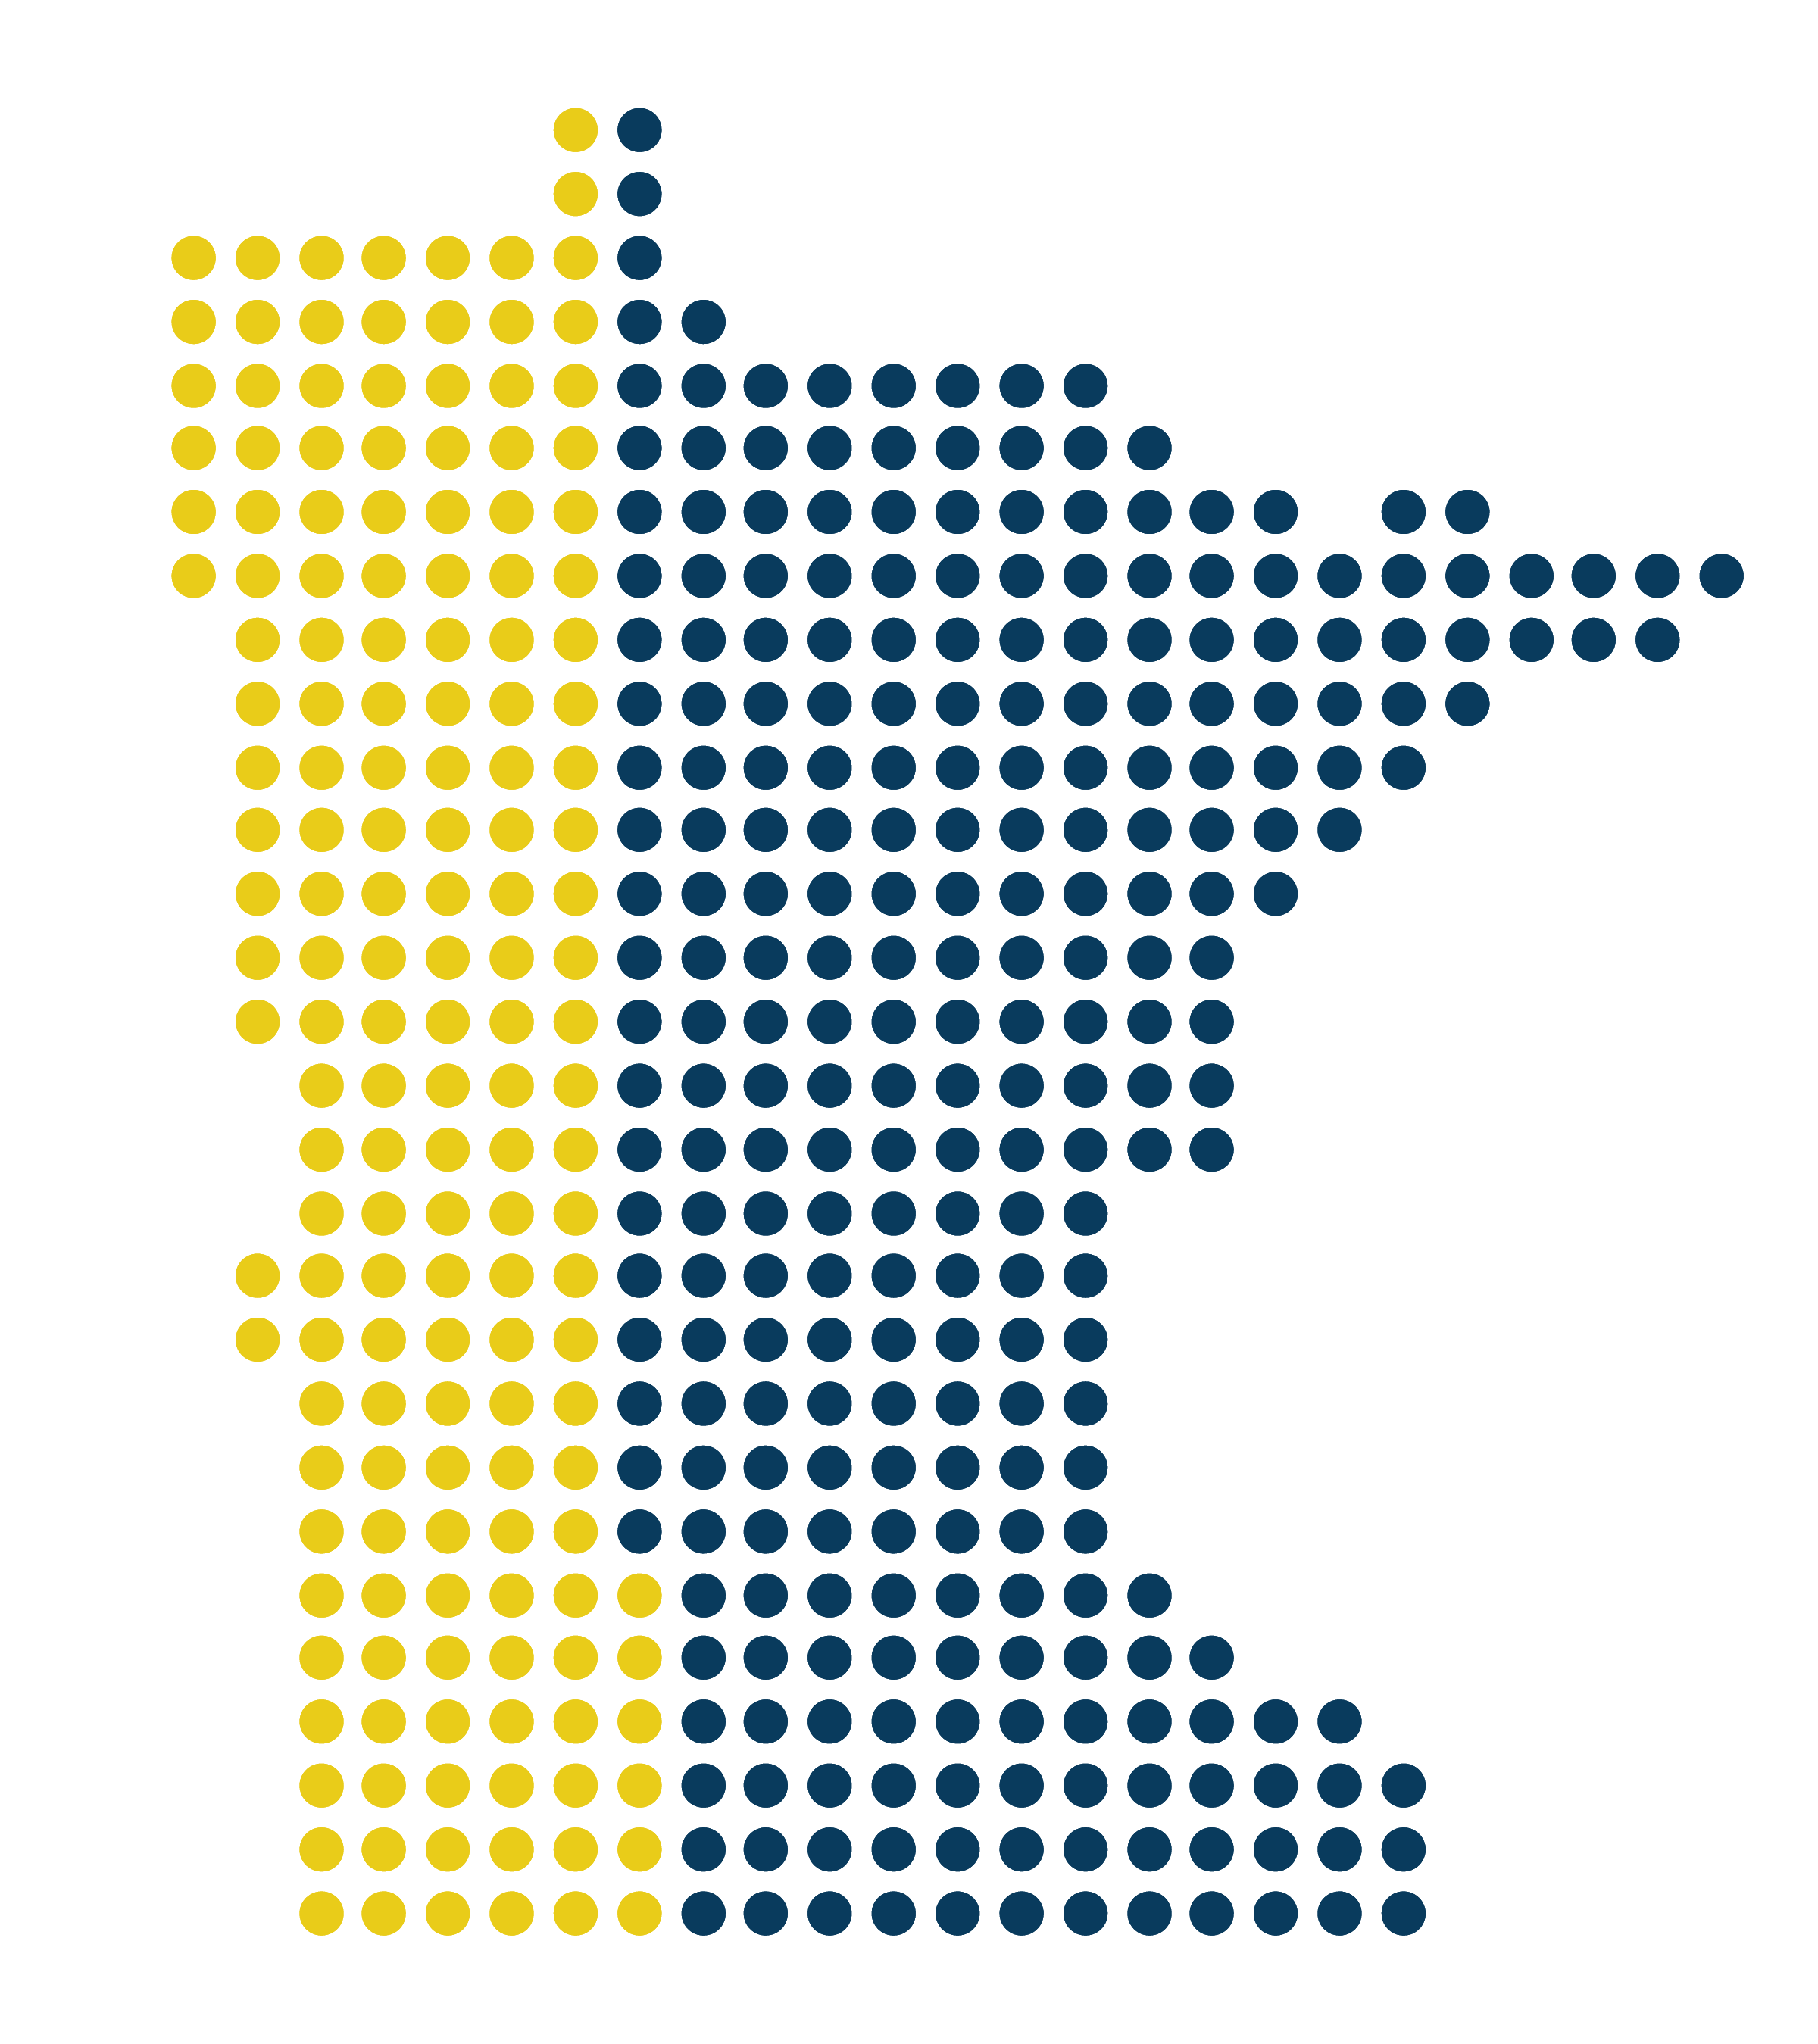 Minnesota graphic showing 37%